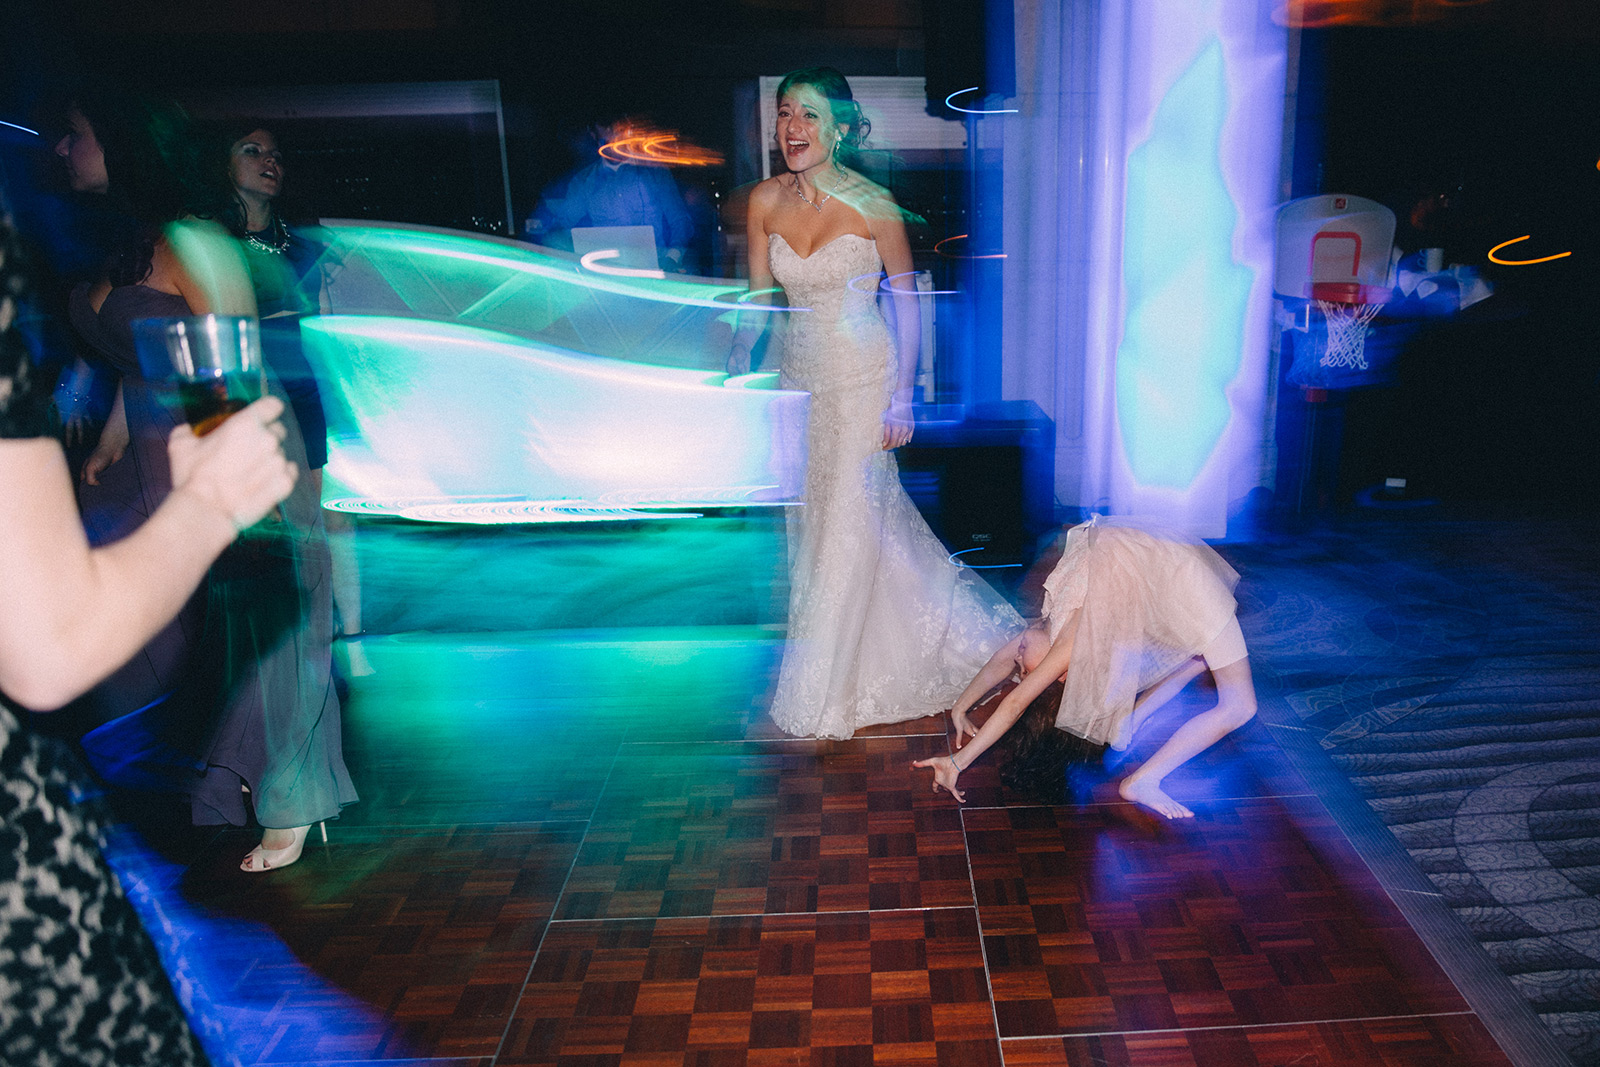 One-King-West-Toronto-wedding-photography_Sam-Wong-of-Visual-Cravings_KnR-41